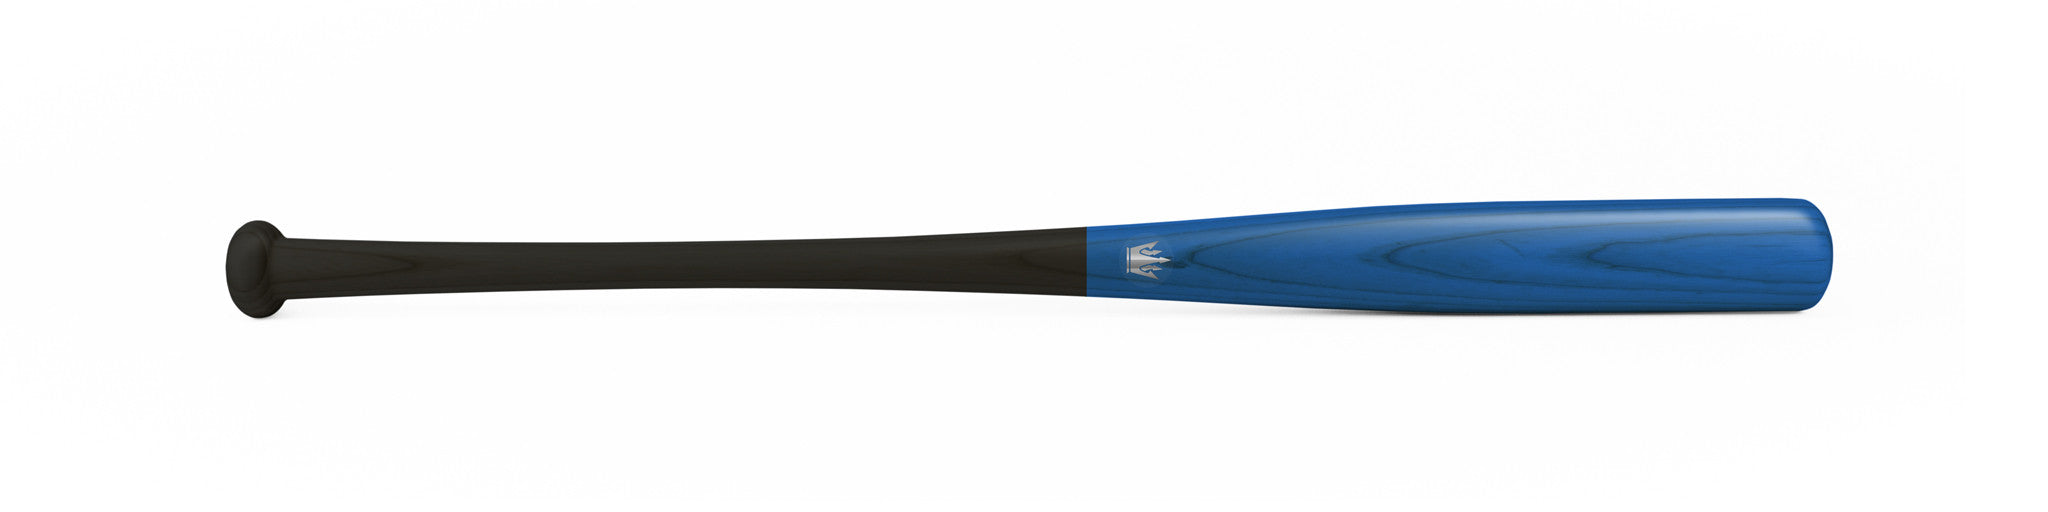 Wood bat - Ash model L10 Black Royal - 23